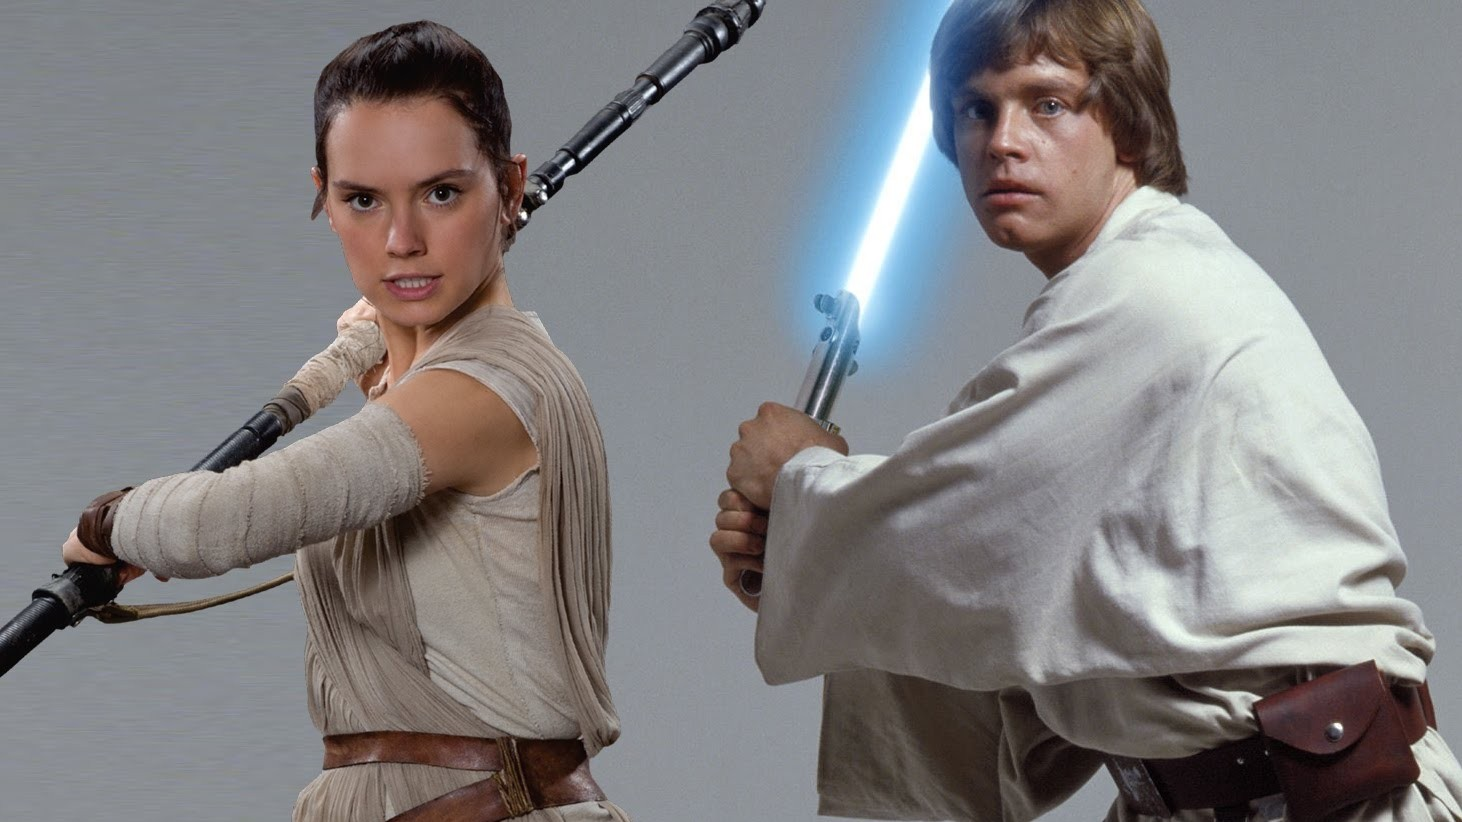 ​'The Force Awakens' is de minst interessante Star Wars-film tot nu toe